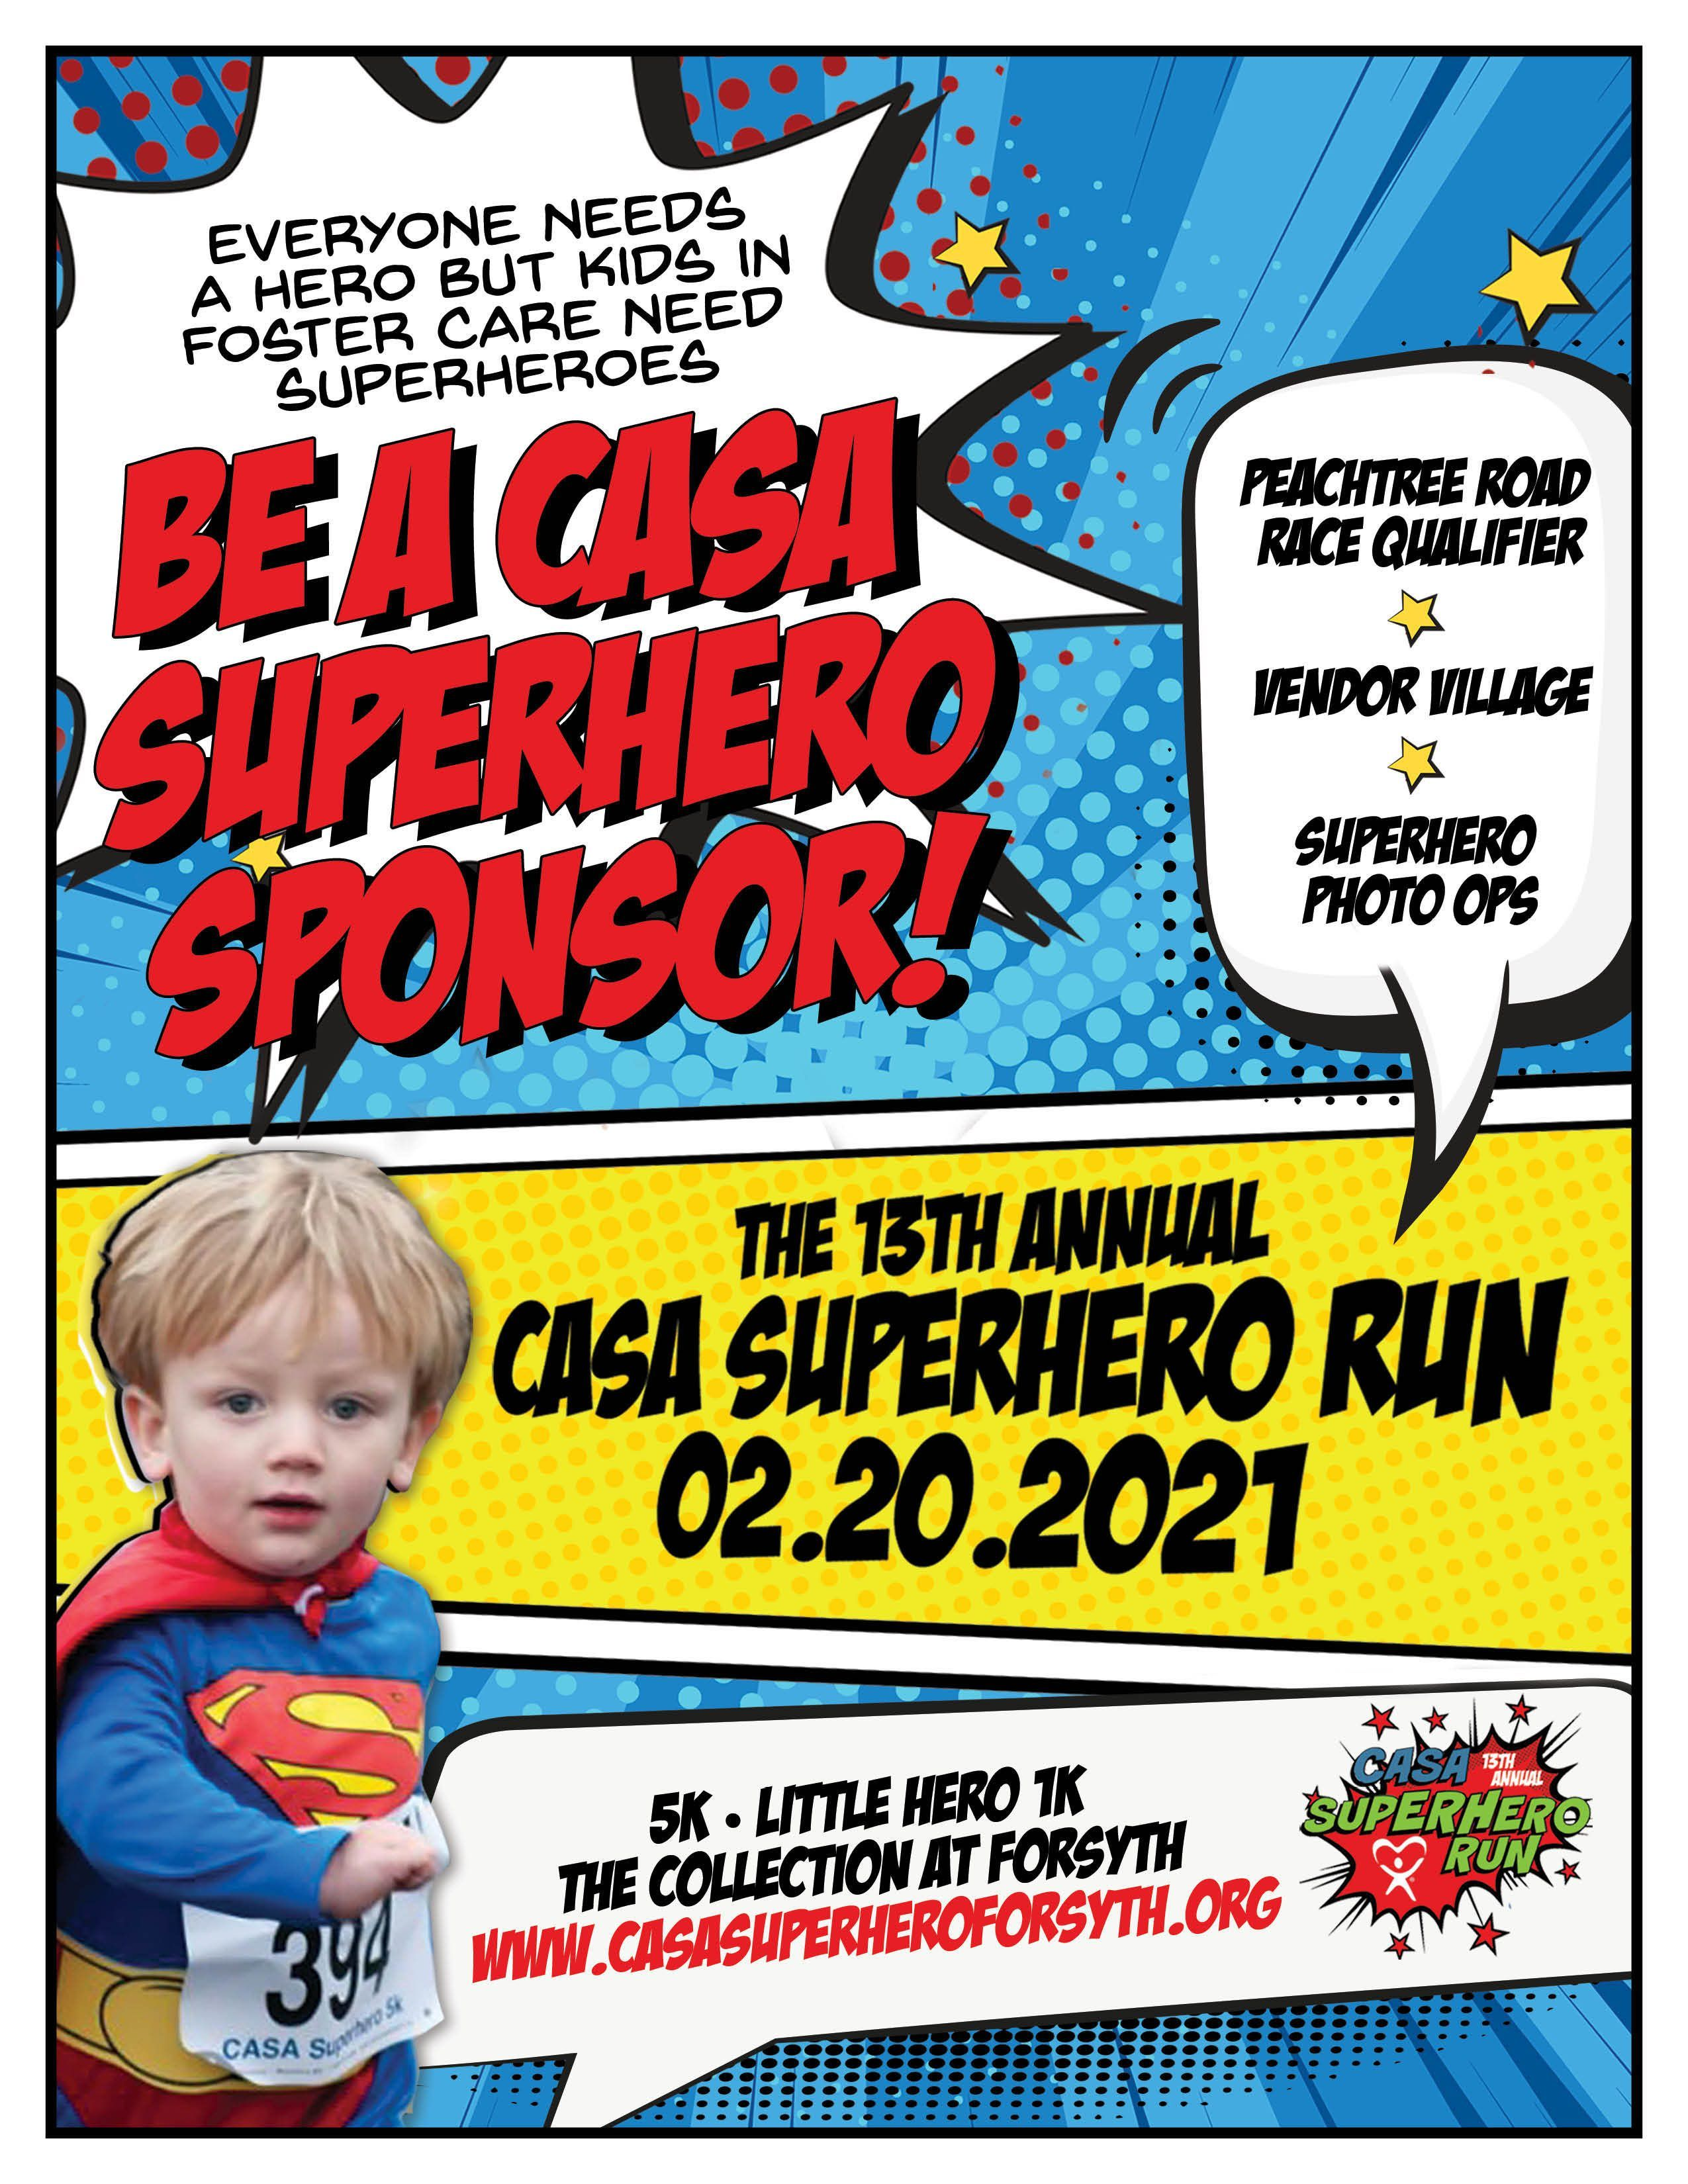 Sponsor the Superhero Run!